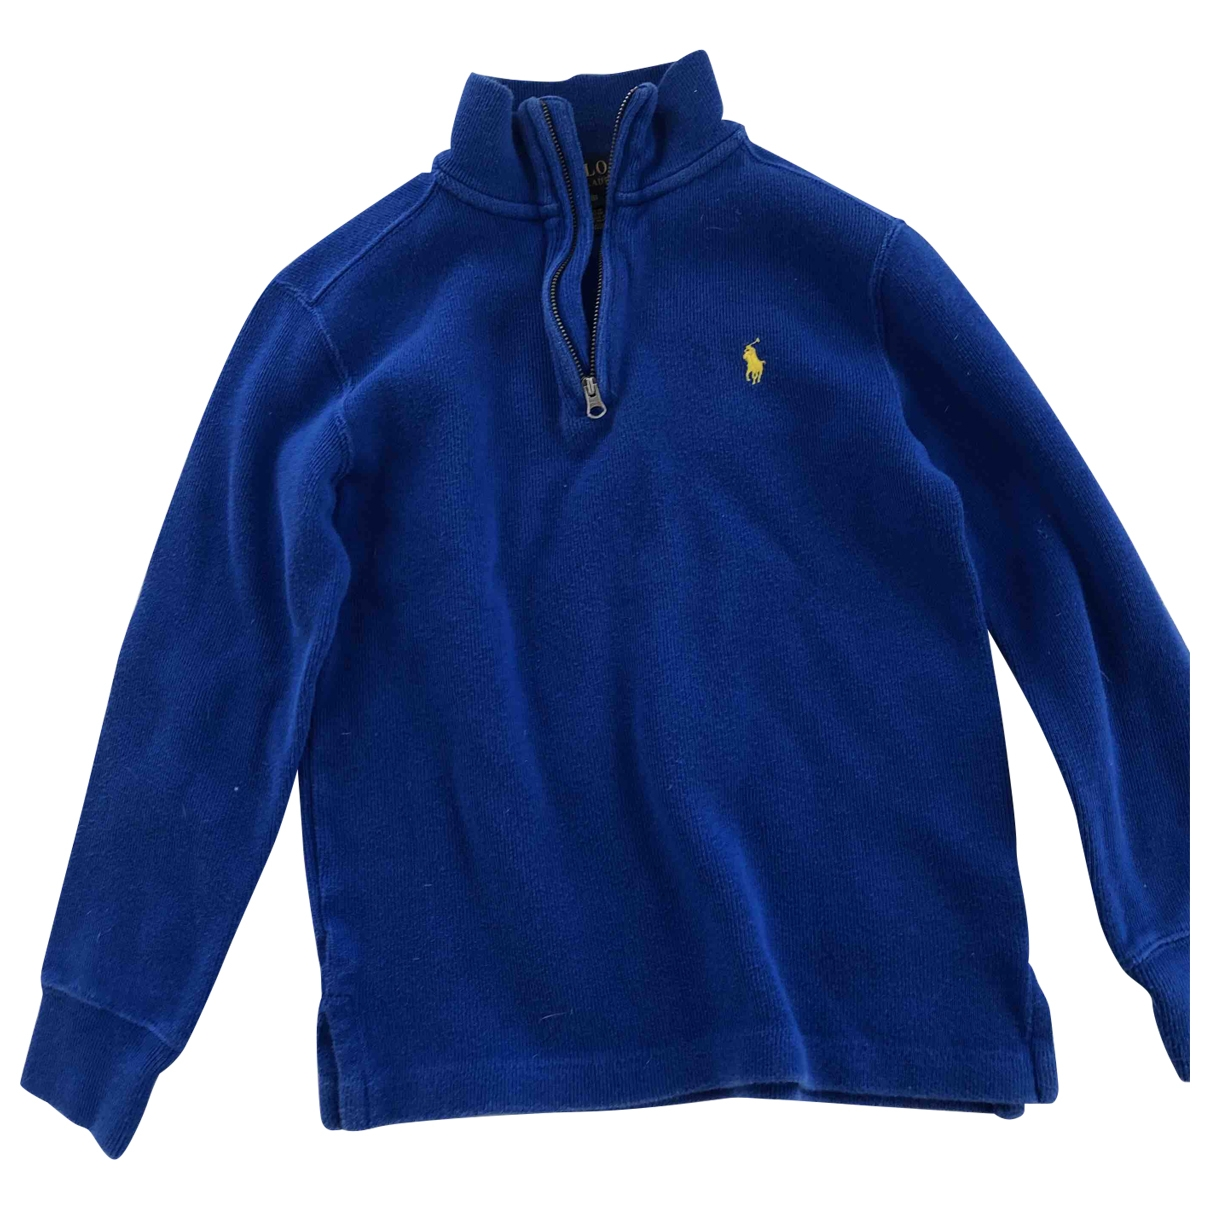 Polo Ralph Lauren \N Blue Cotton Knitwear for Kids 8 years - up to 128cm